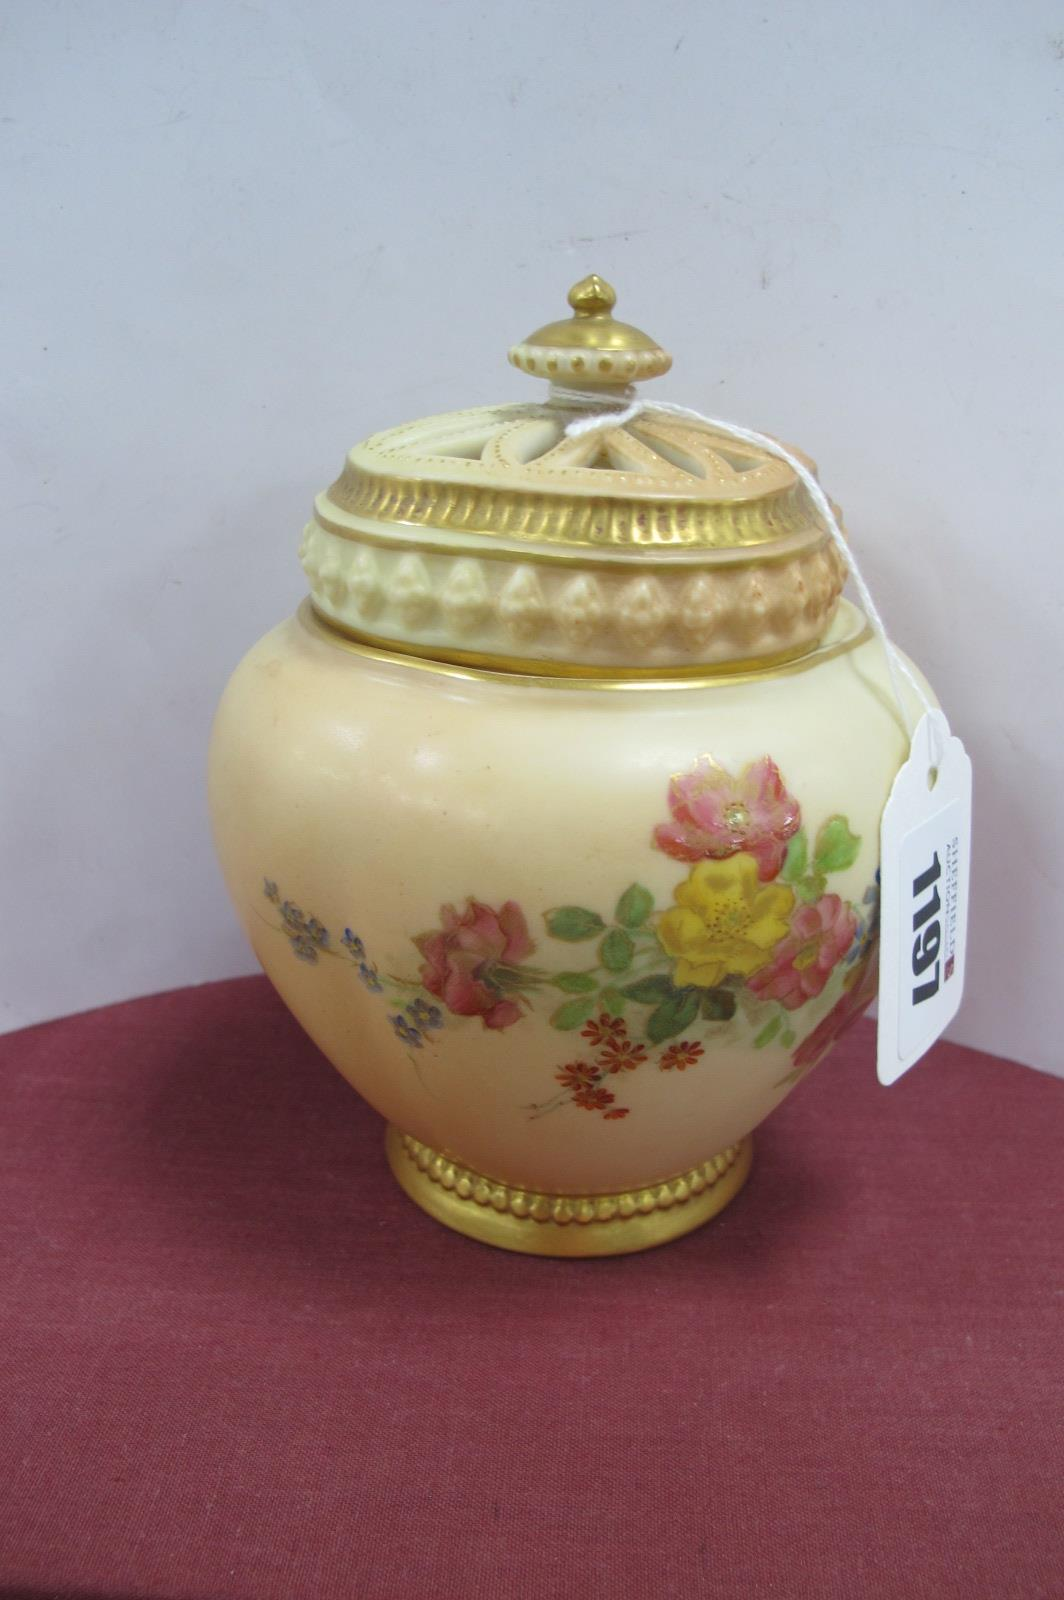 Royal Worcester Pot Pourri, circa 1900 hand painted with colourful flowers and foliage on blush